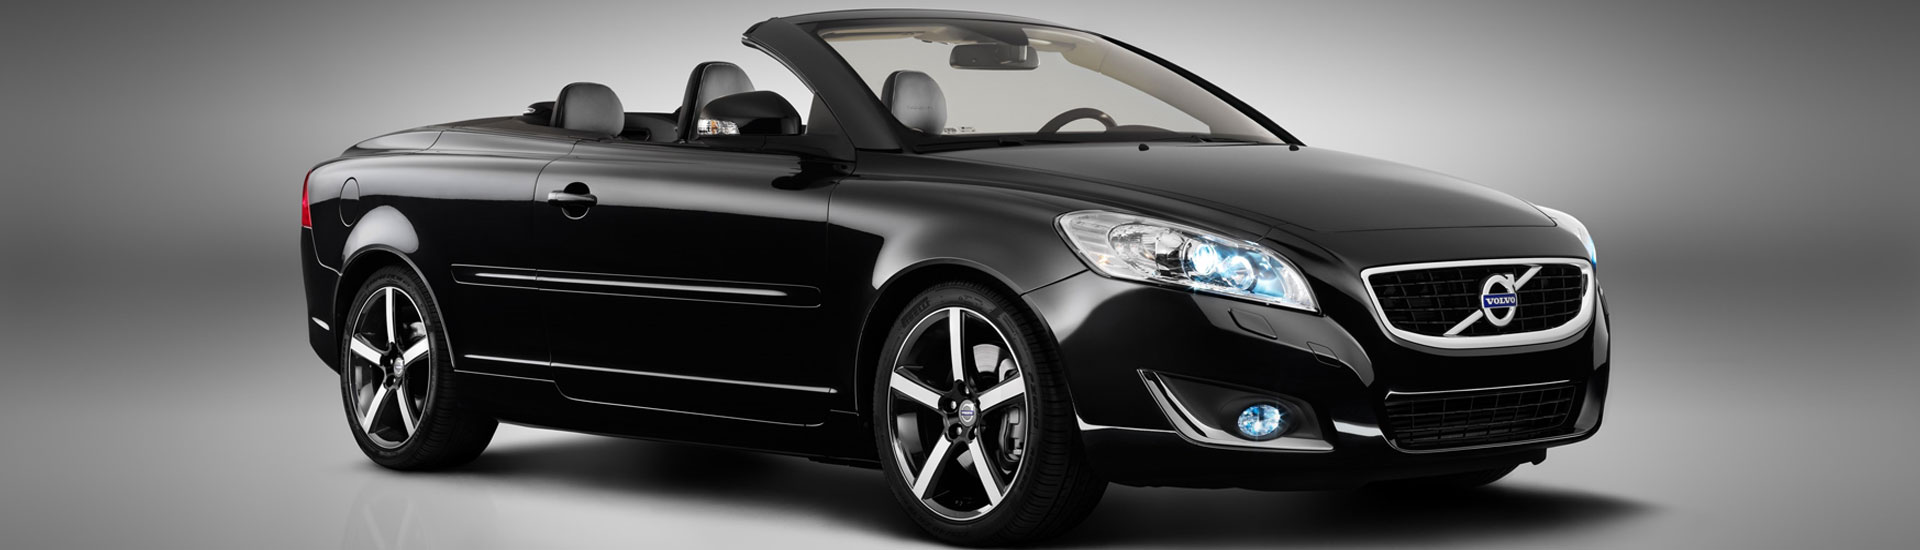 Volvo C70 Window Tint